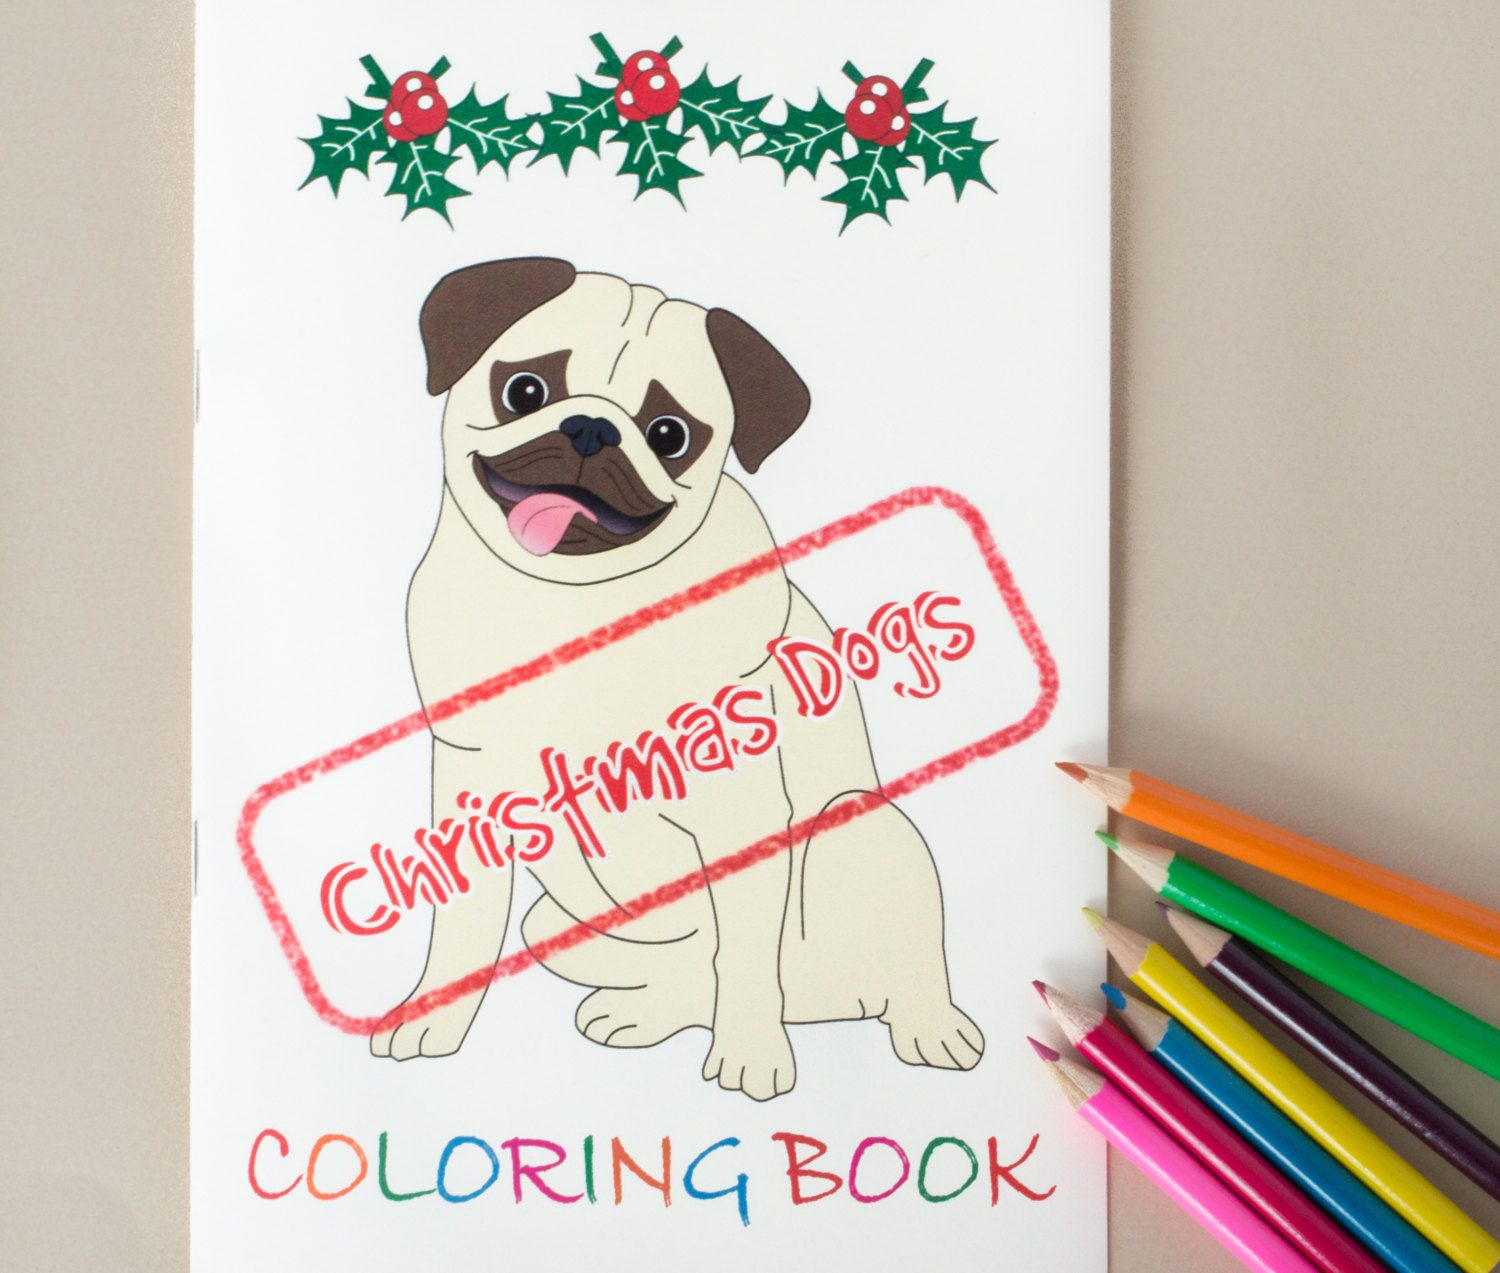 Christmas Dog Coloring Book Colouring Book Dog Drawing Christmas Coloring Books Drawing Book Pu Dog Coloring Book Christmas Coloring Books Coloring Books